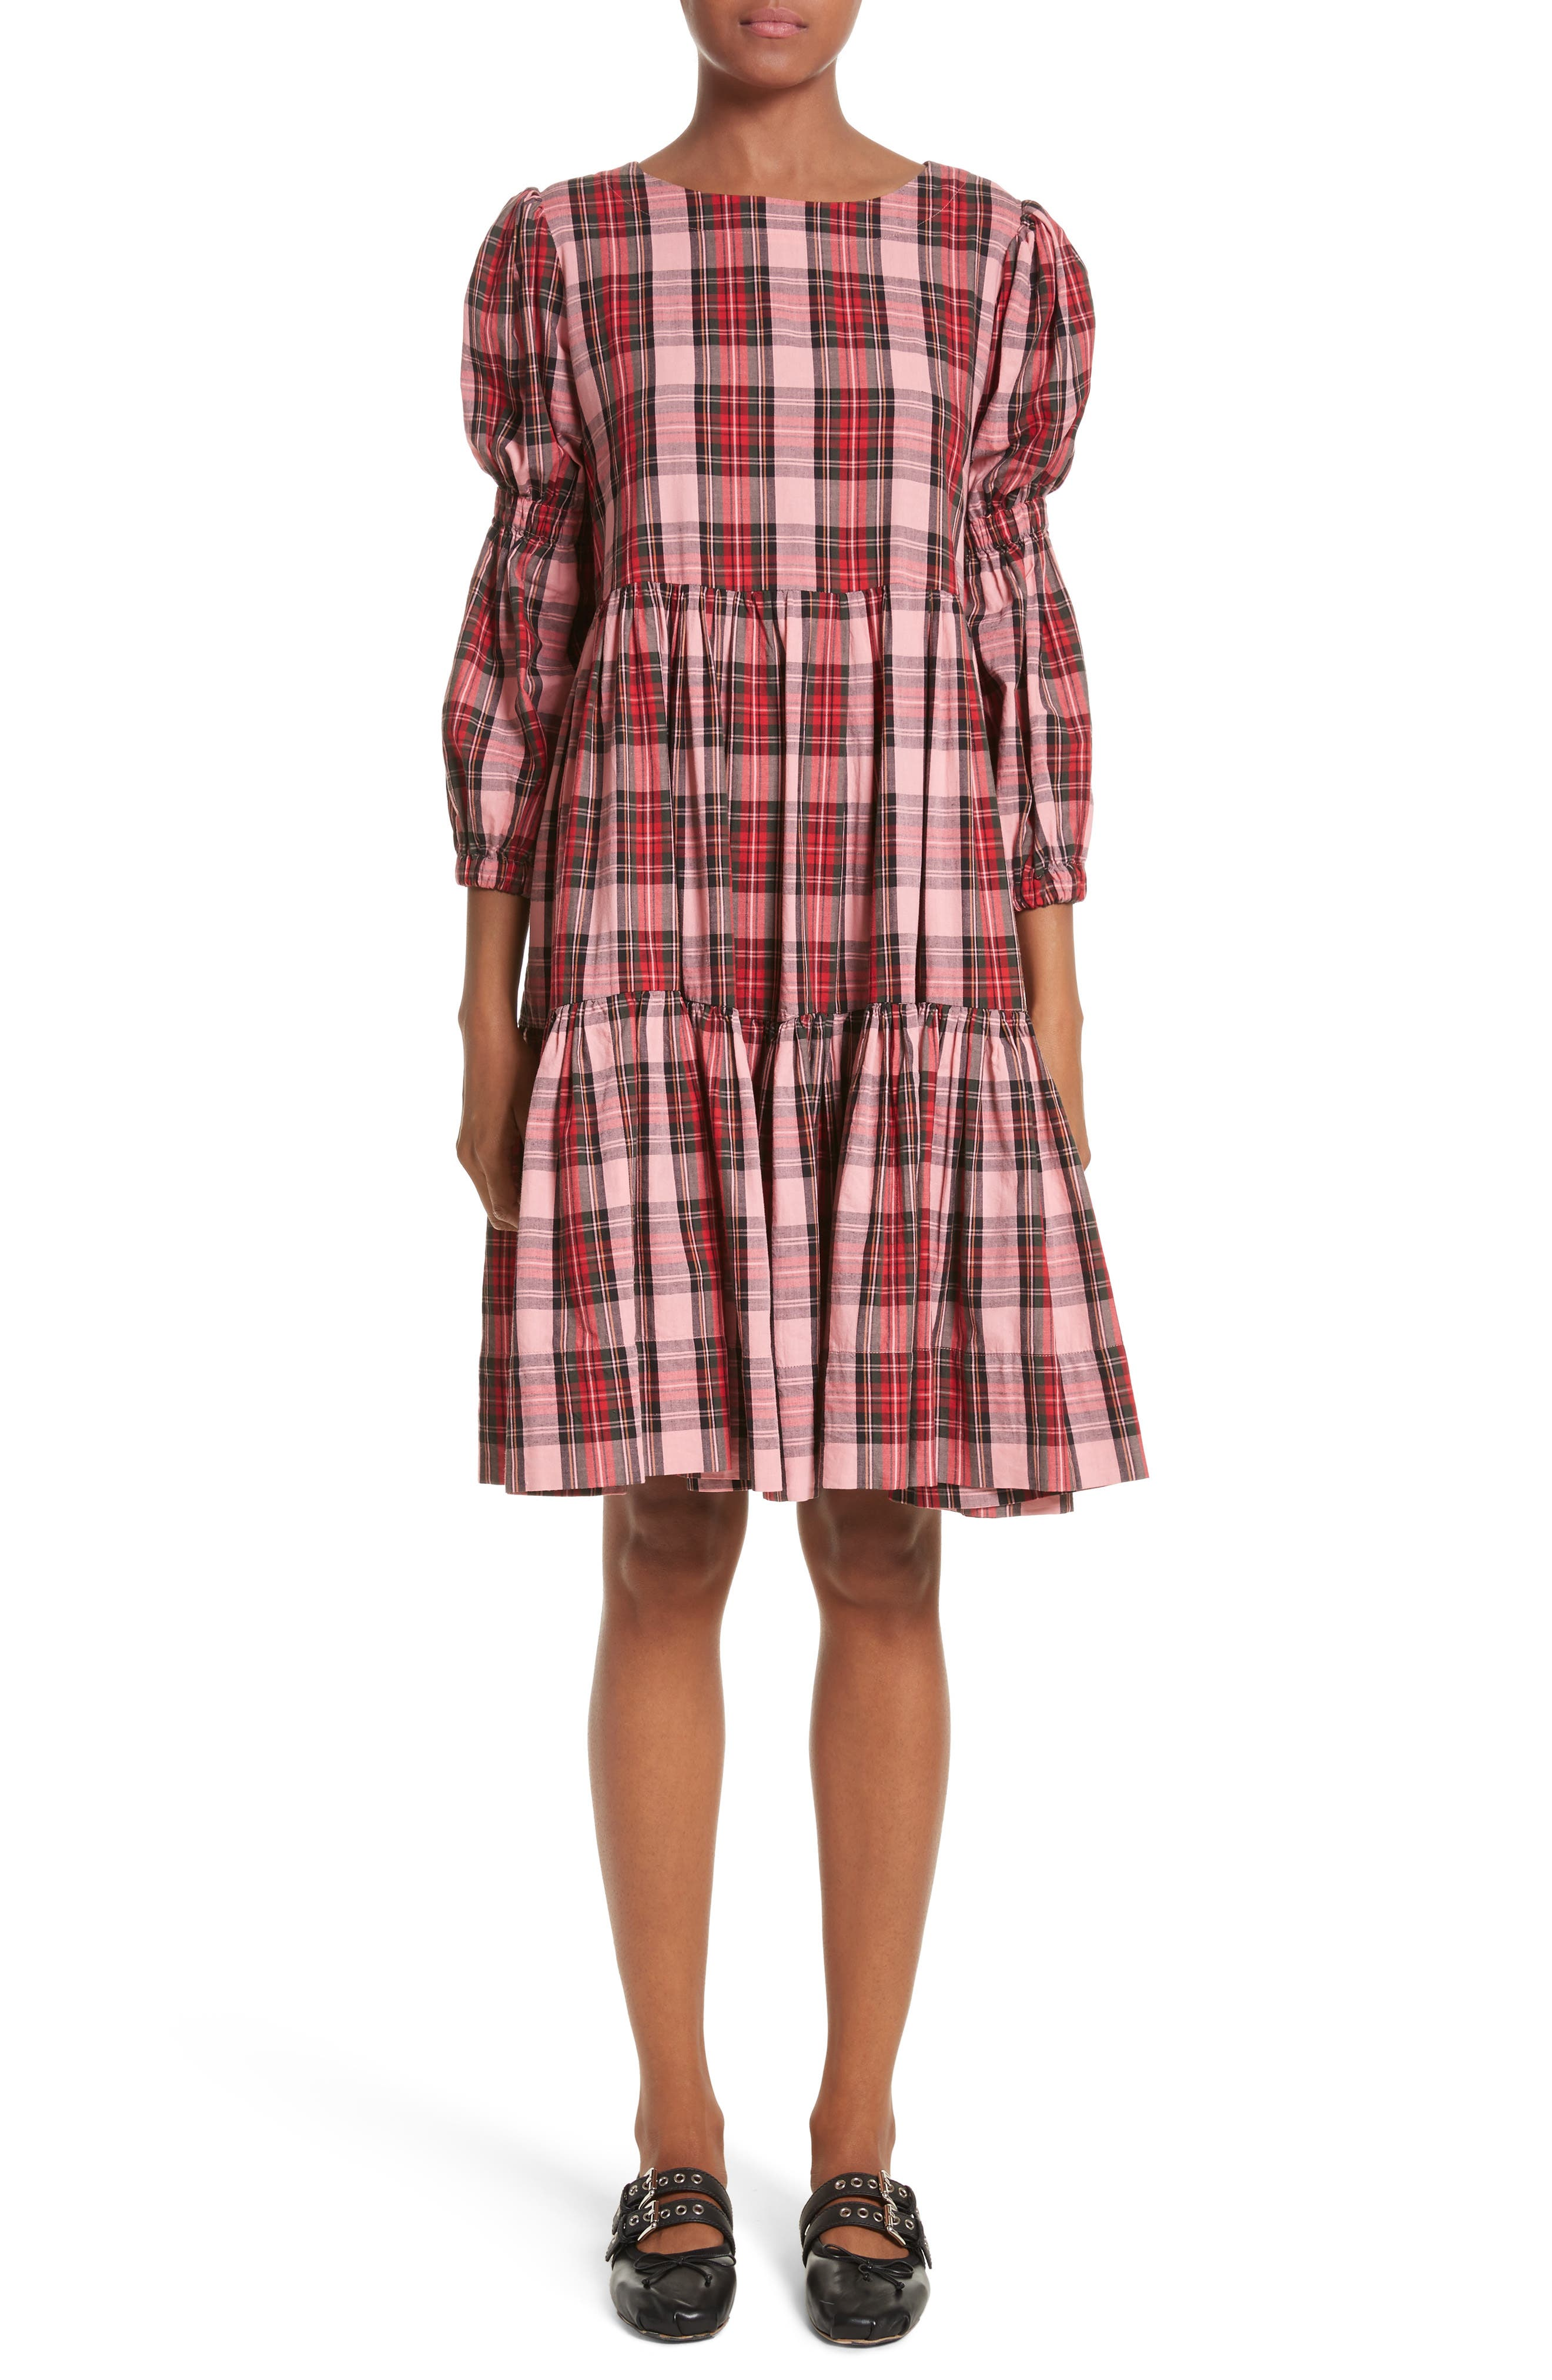 Alternate Image 1 Selected - Molly Goddard Martha Tartan Dress